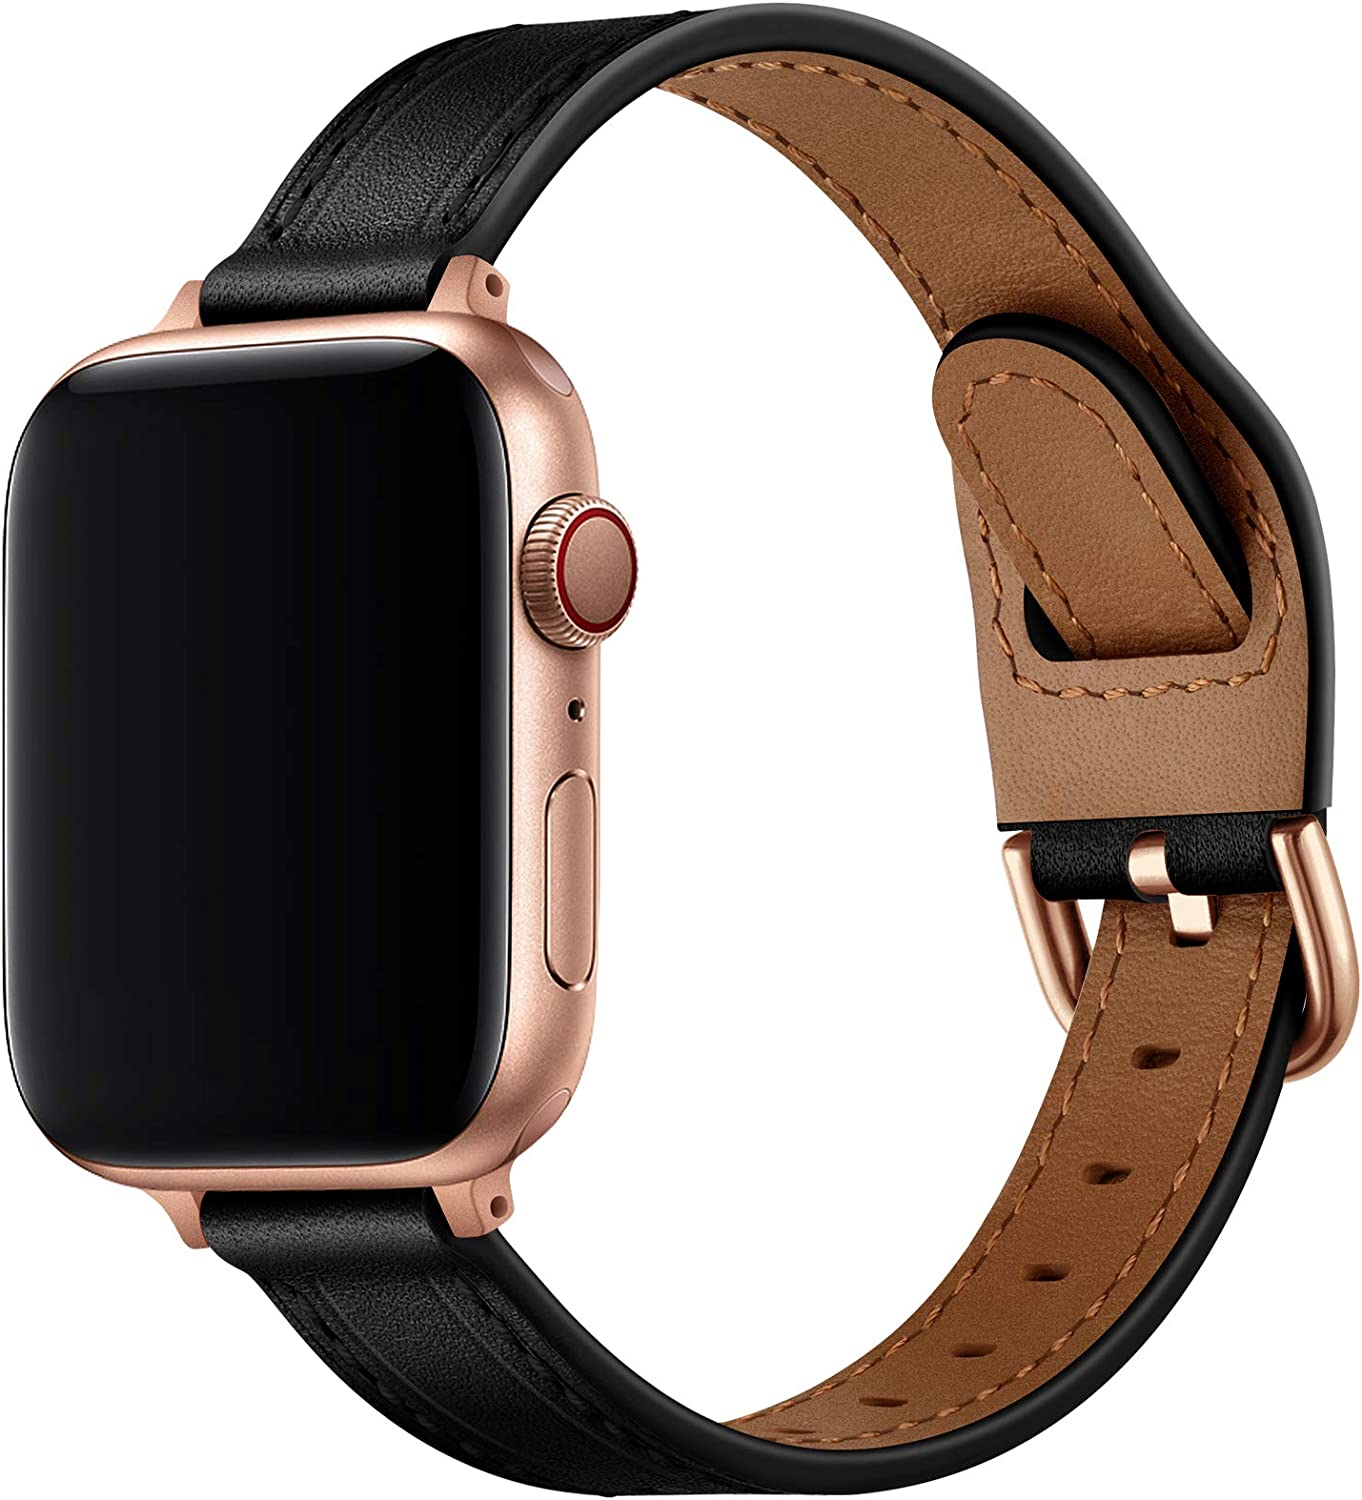 OUHENG Slim Band Compatible with Apple Watch Bands 40mm 38mm 44mm 42mm, Women Thin Genuine Leather Replacement Strap Compatible with iWatch SE Series 6/5/4/3/2/1 (Black/Rose Gold, 40mm 38mm)